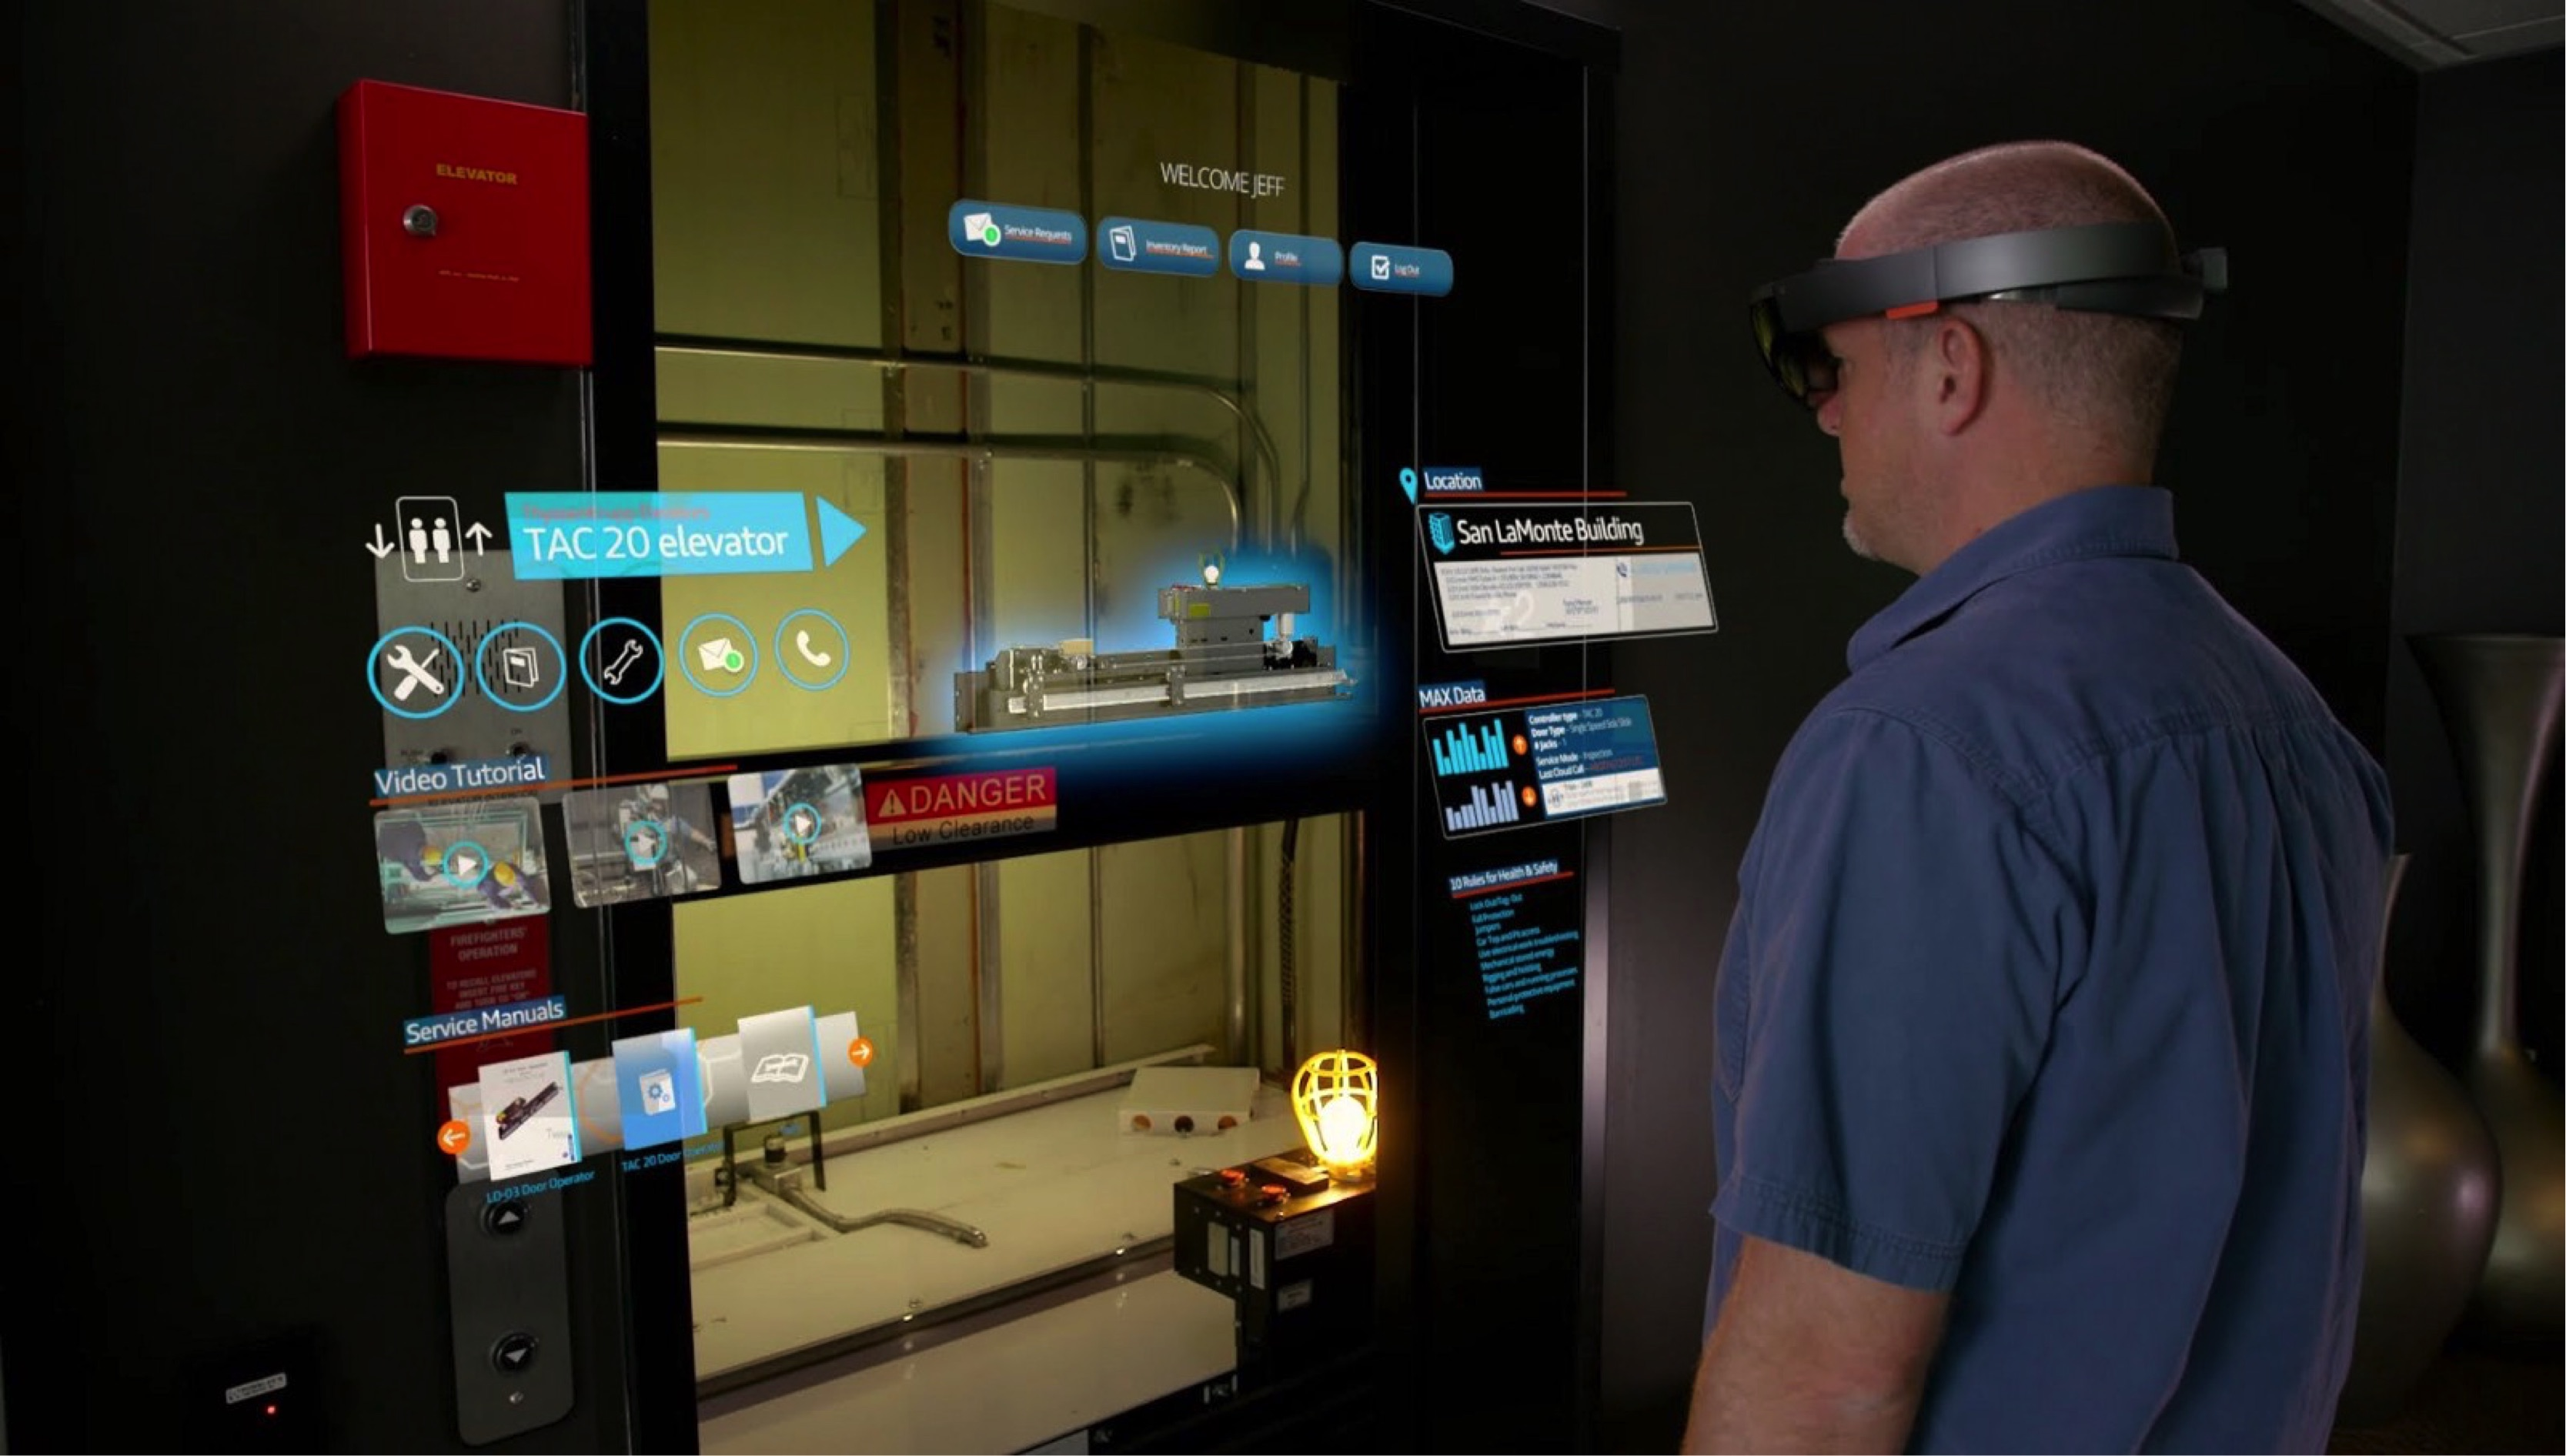 HoloLens for Repair and Maintenance